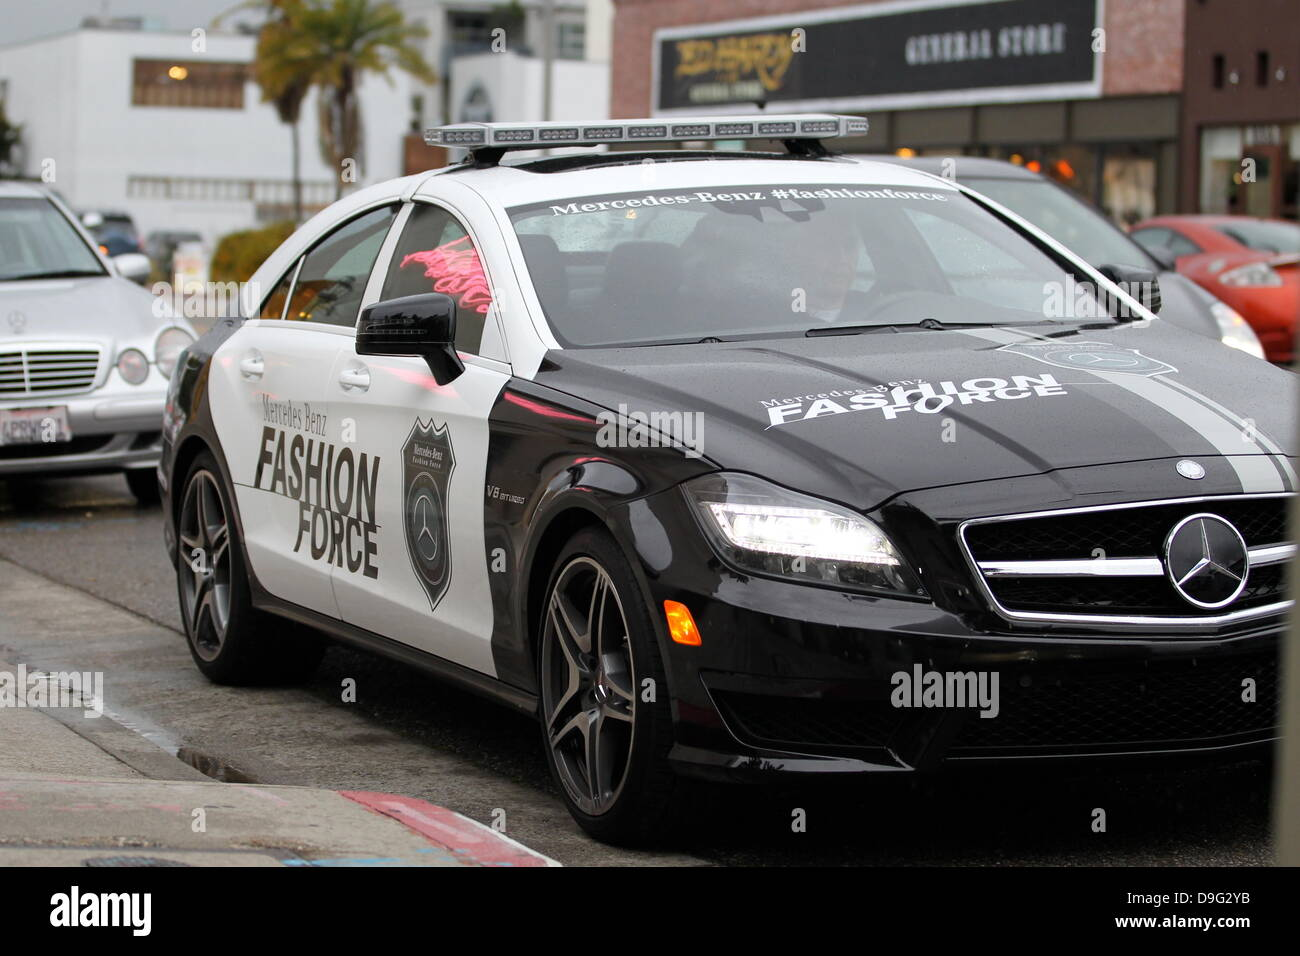 Mercedes fashion force car patrols la the mercedes benz usafashion mercedes fashion force car patrols la the mercedes benz usafashion force car could be seen patrolling the streets of los angeles during the academy awards altavistaventures Gallery